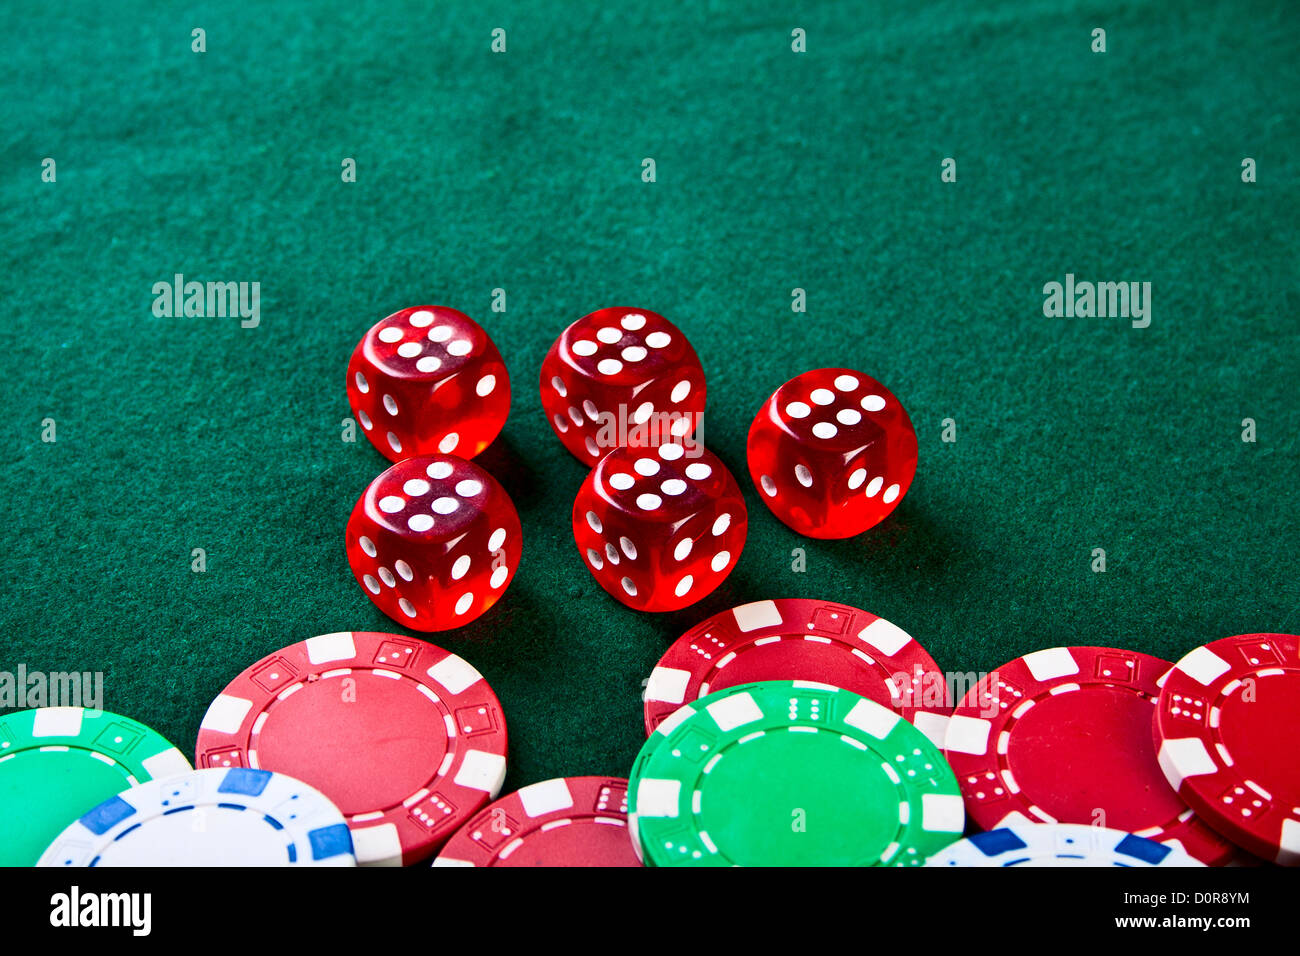 Chips and dices on the table. Stock Photo